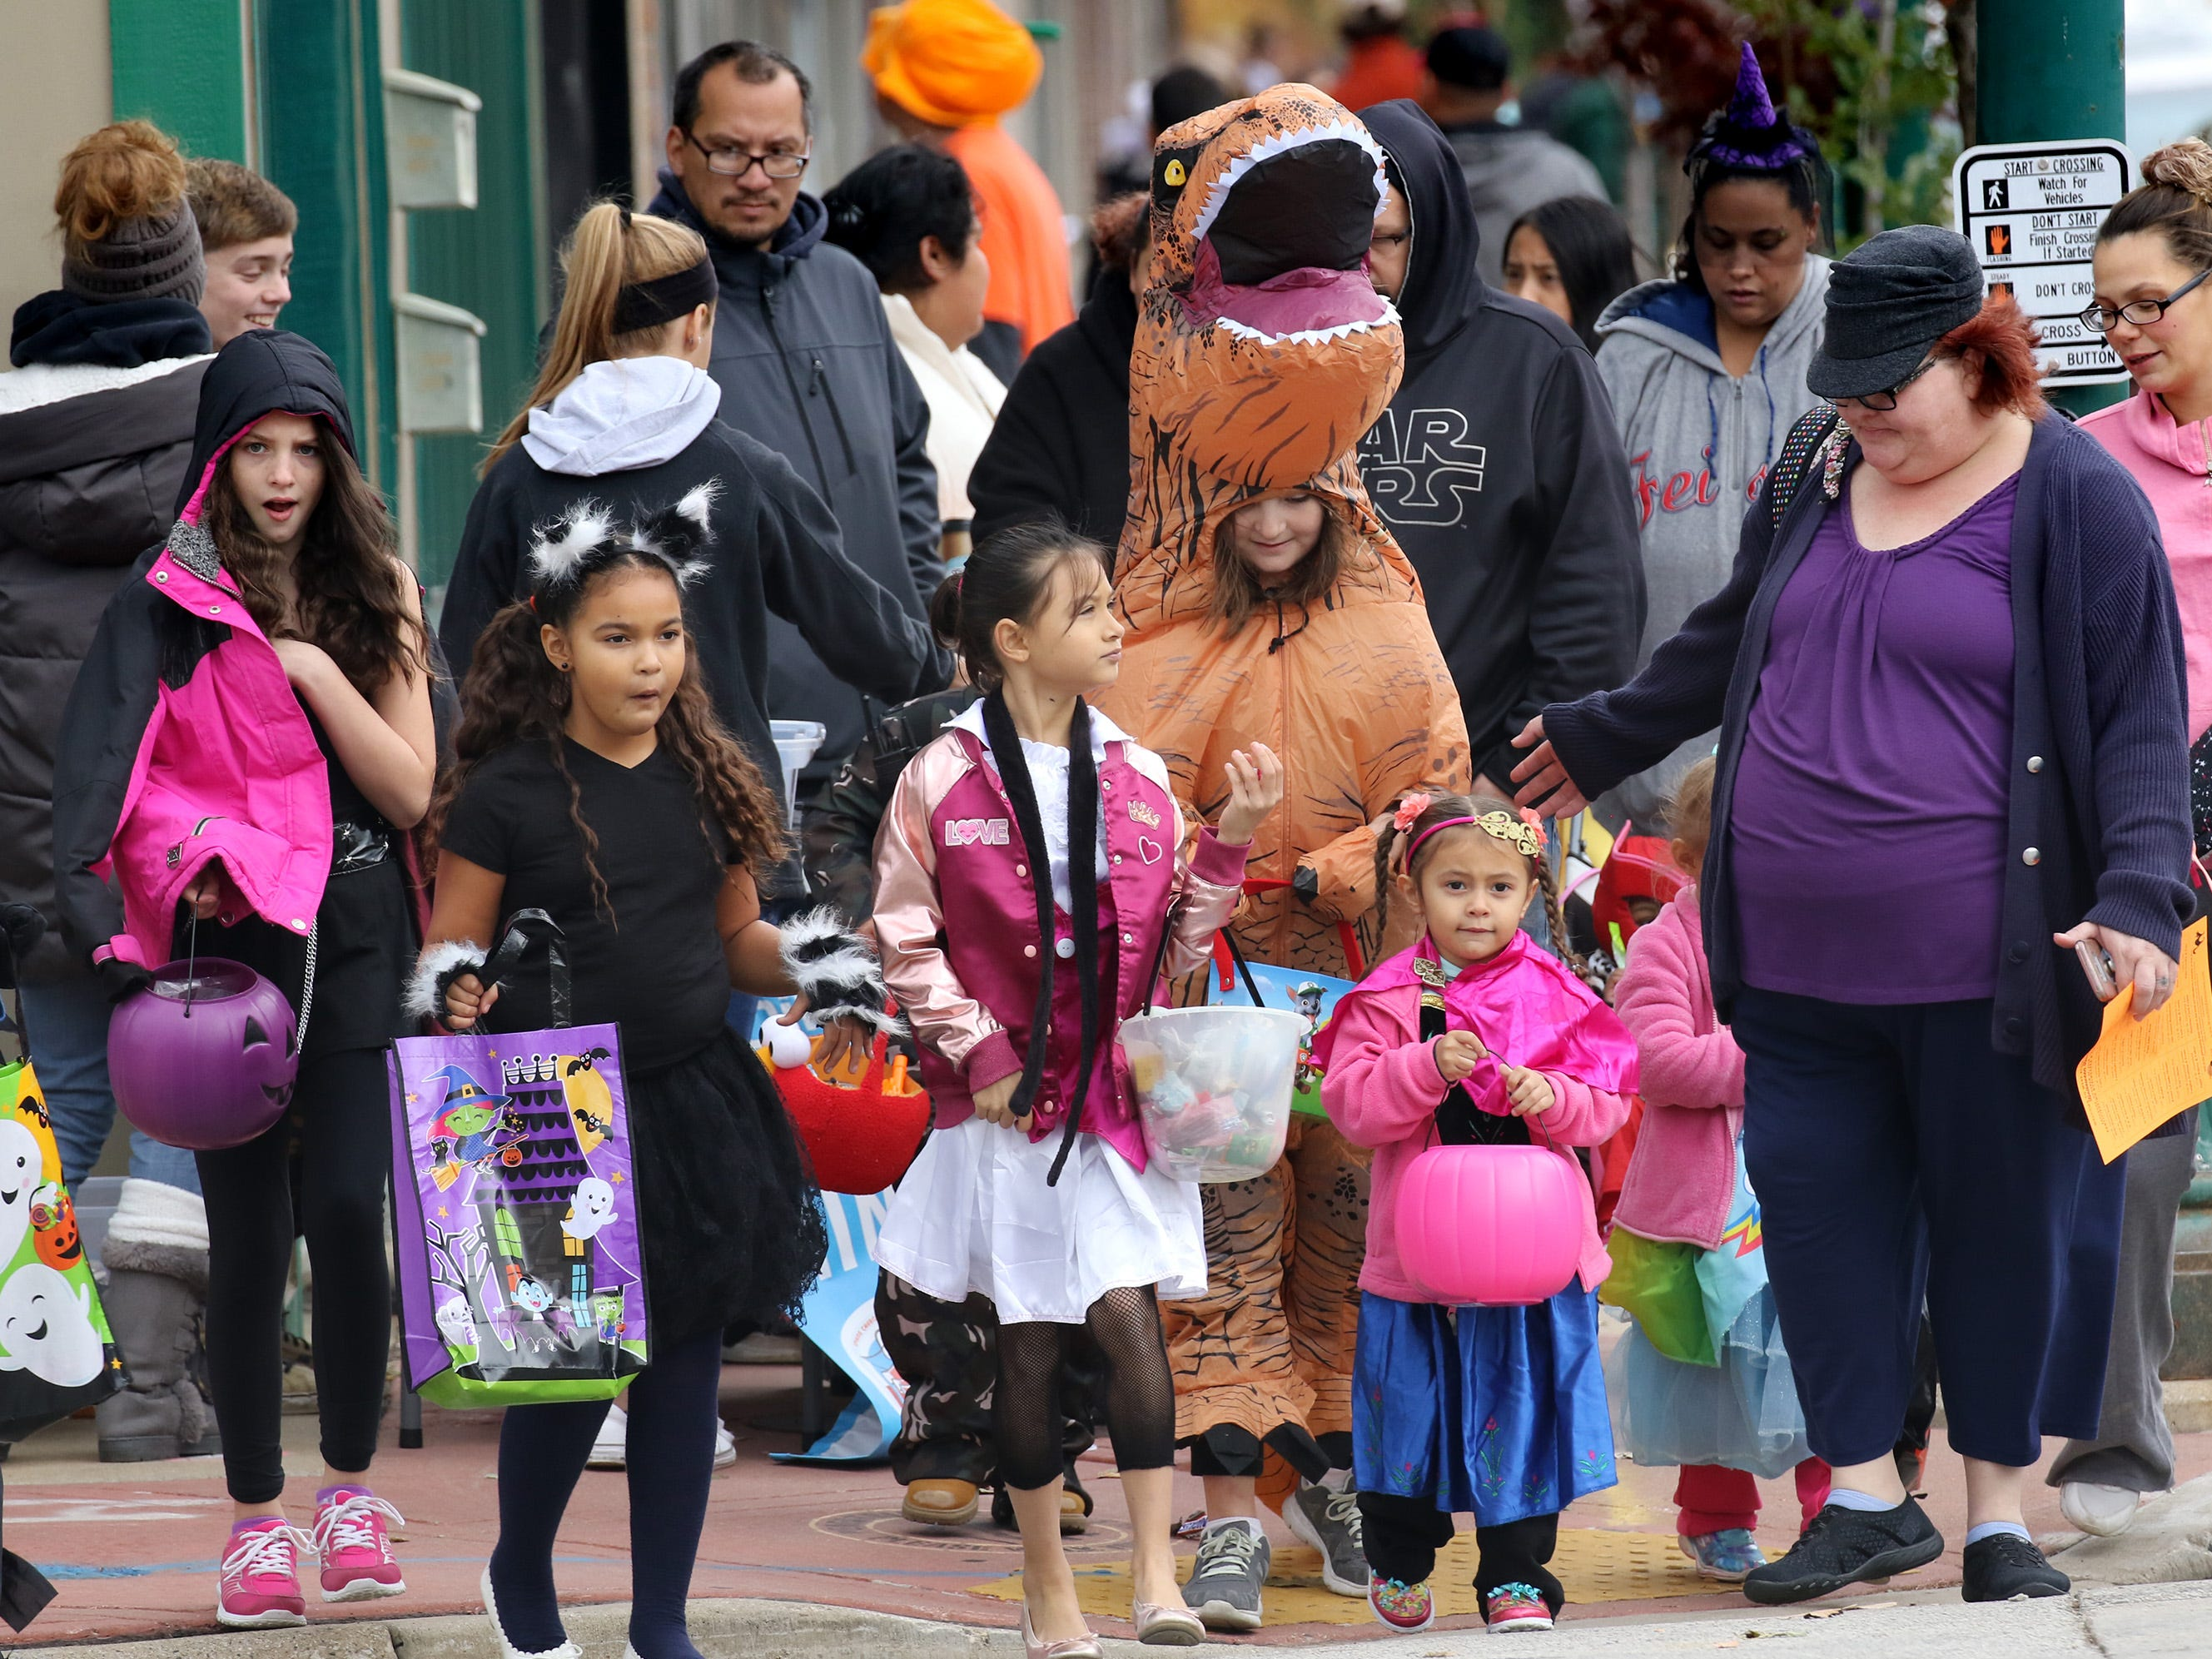 Trick or treaters wait to cross a side street along Greenfield Avenue during the West Allis Downtown Halloween Hunt on Oct. 27.